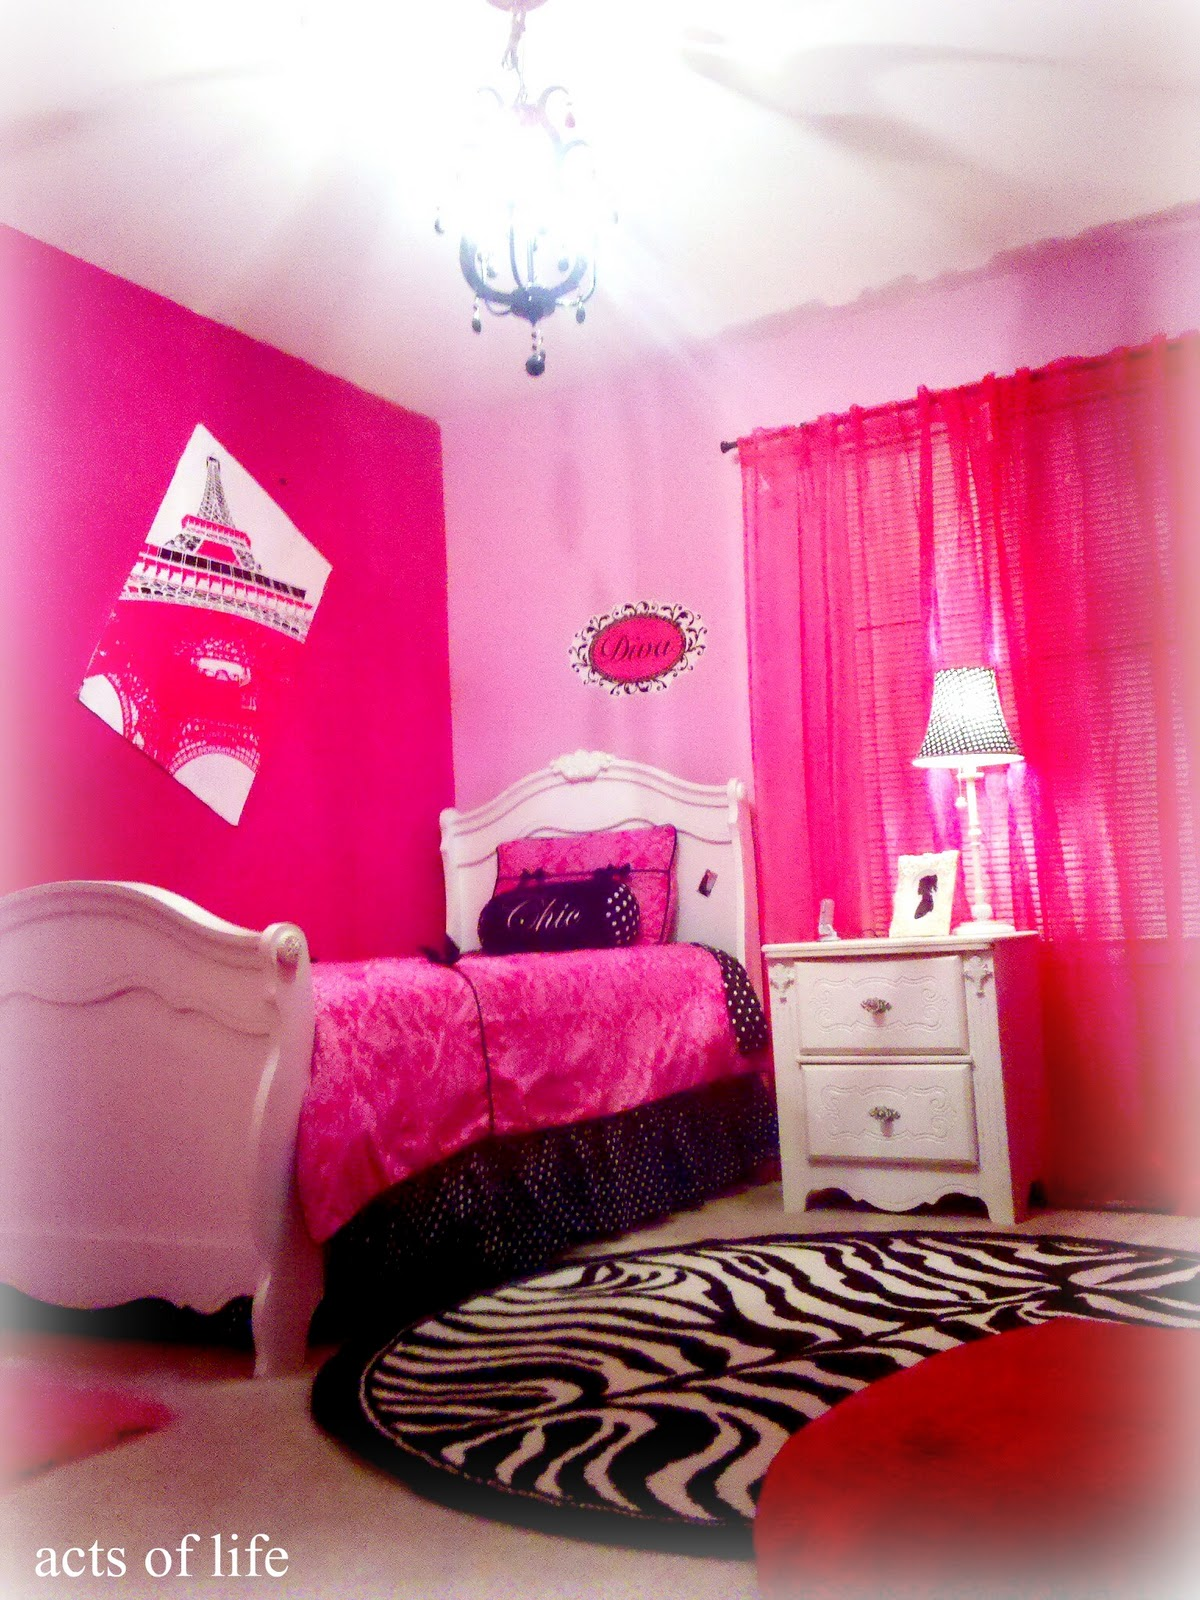 Acts of Life: Hot pink Bedroom! My daughters bedroom project